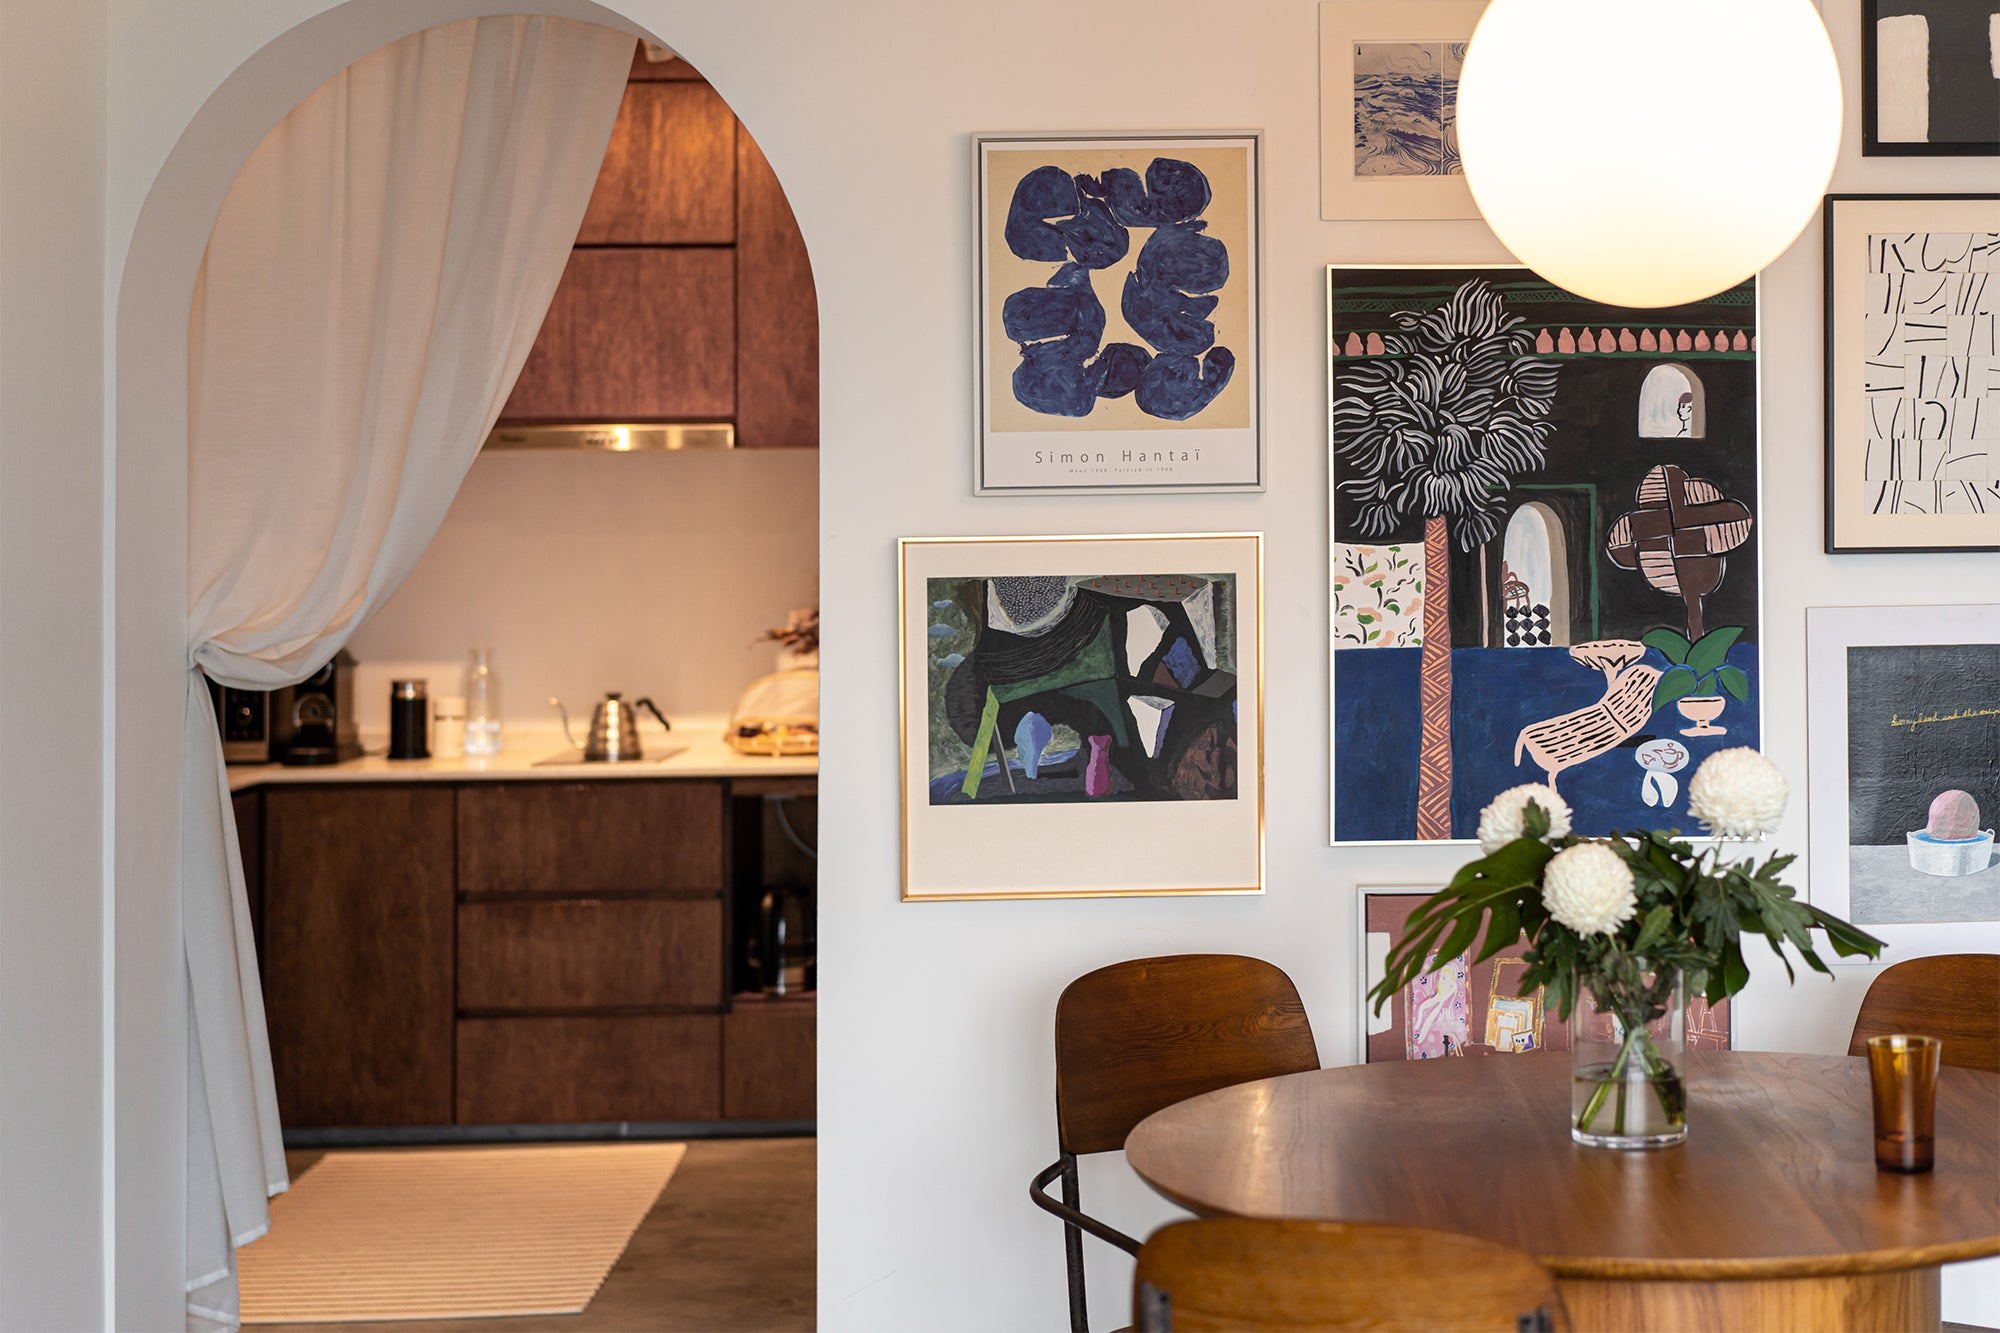 midcentury modern dining room with archway door